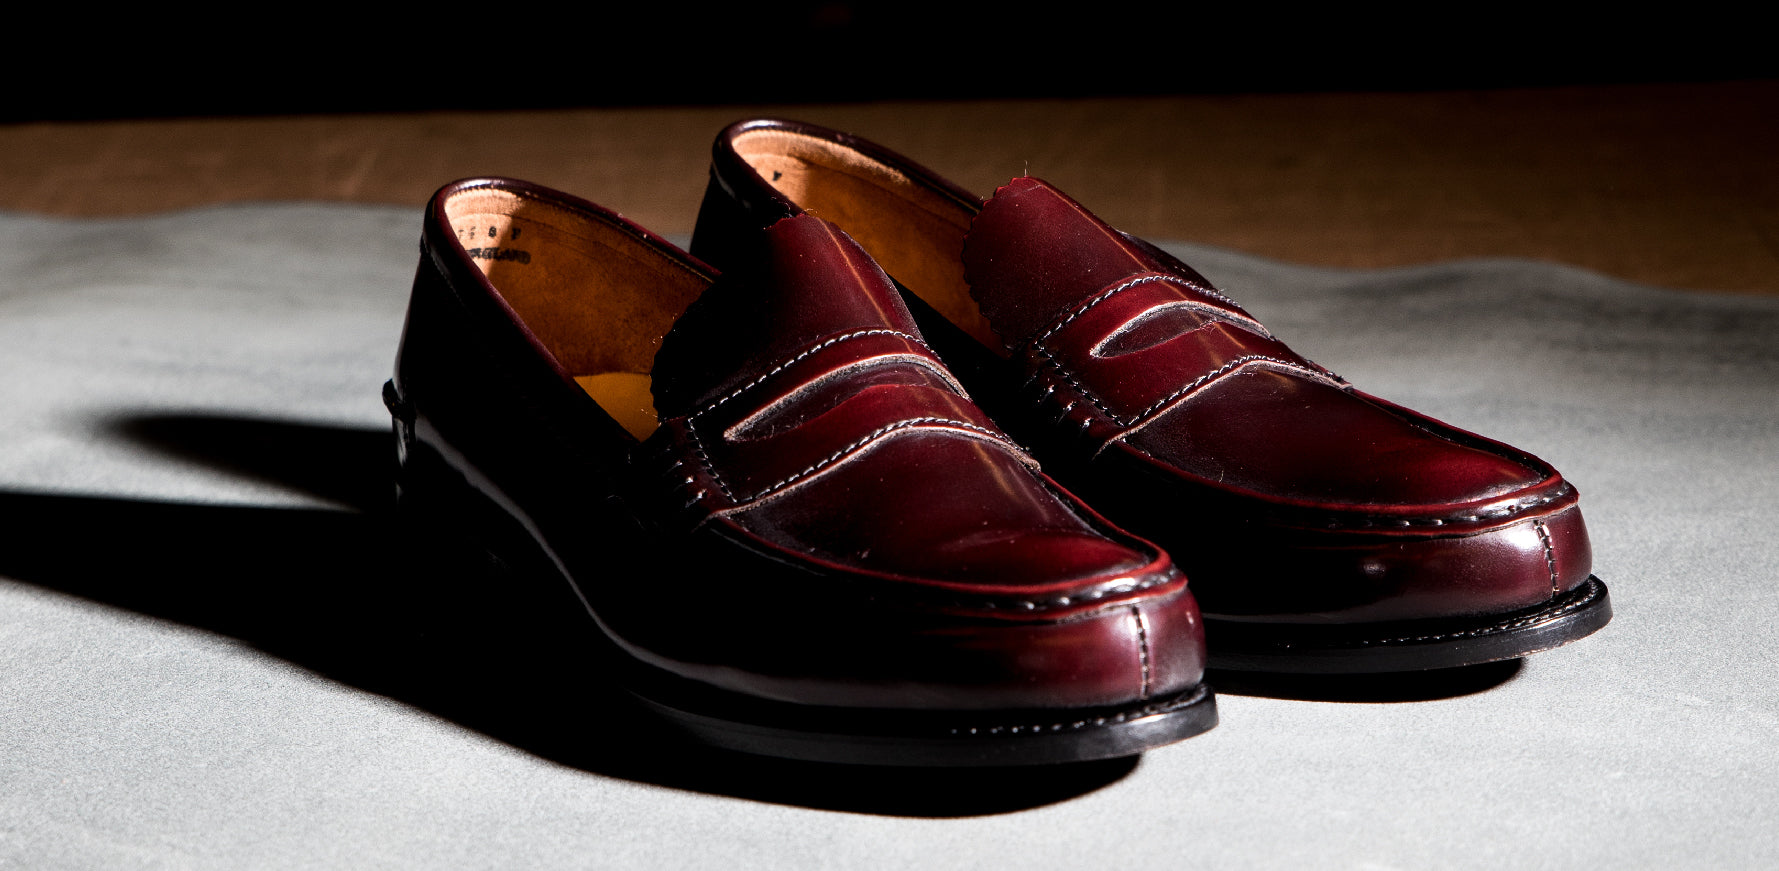 Caruso - Men's Handmade Penny Loafer By Barker